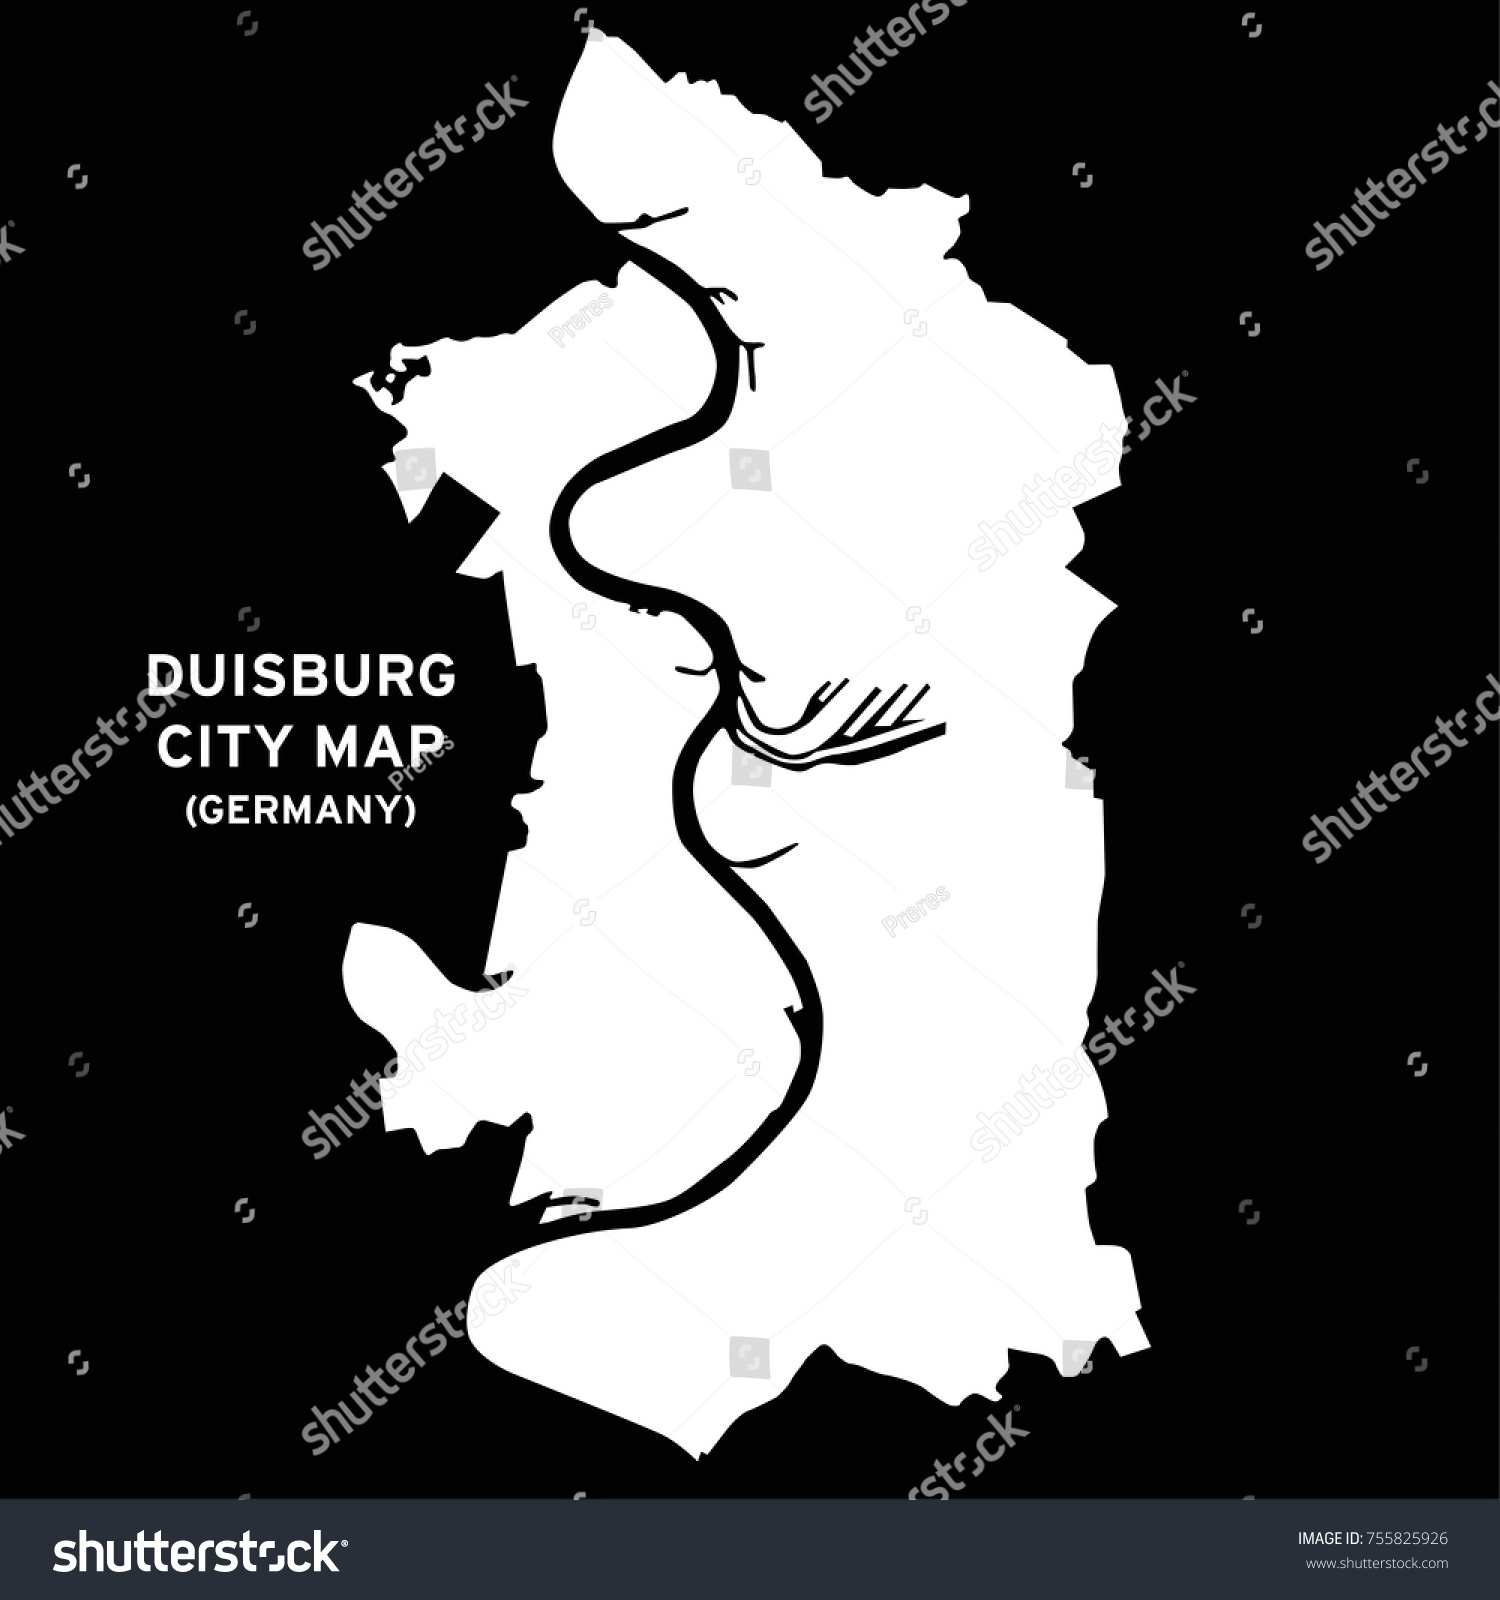 Duisburg Germany Map Vector Stock Vector 755825926 Shutterstock